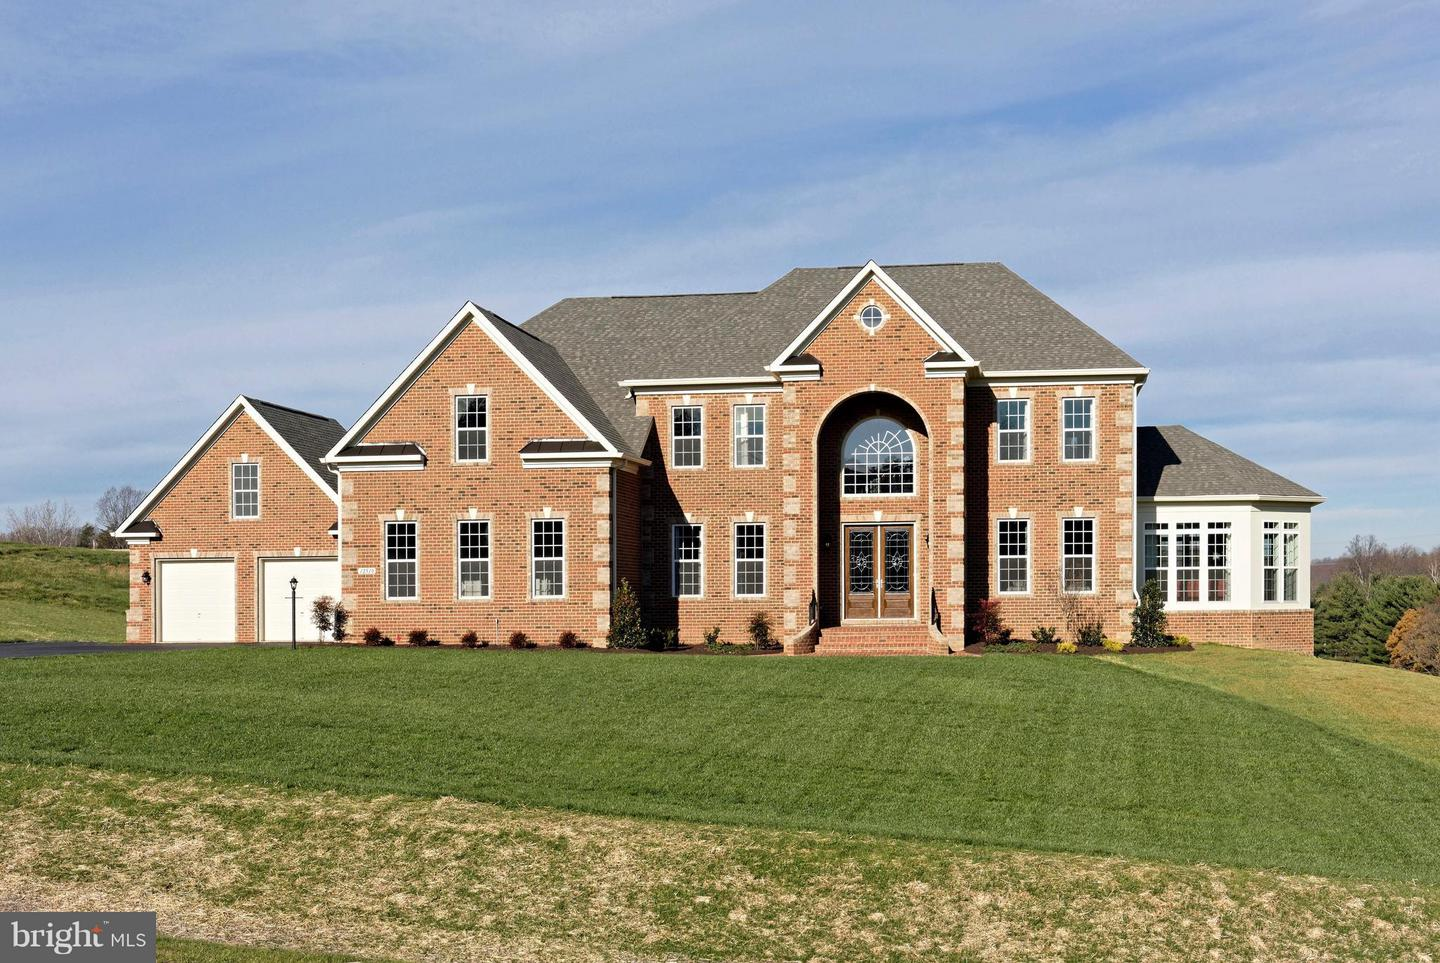 7410 HAVEN CT, Highland, Maryland 20777, 4 Bedrooms Bedrooms, ,4 BathroomsBathrooms,Single Family,For Sale,7410 HAVEN CT,1002030658